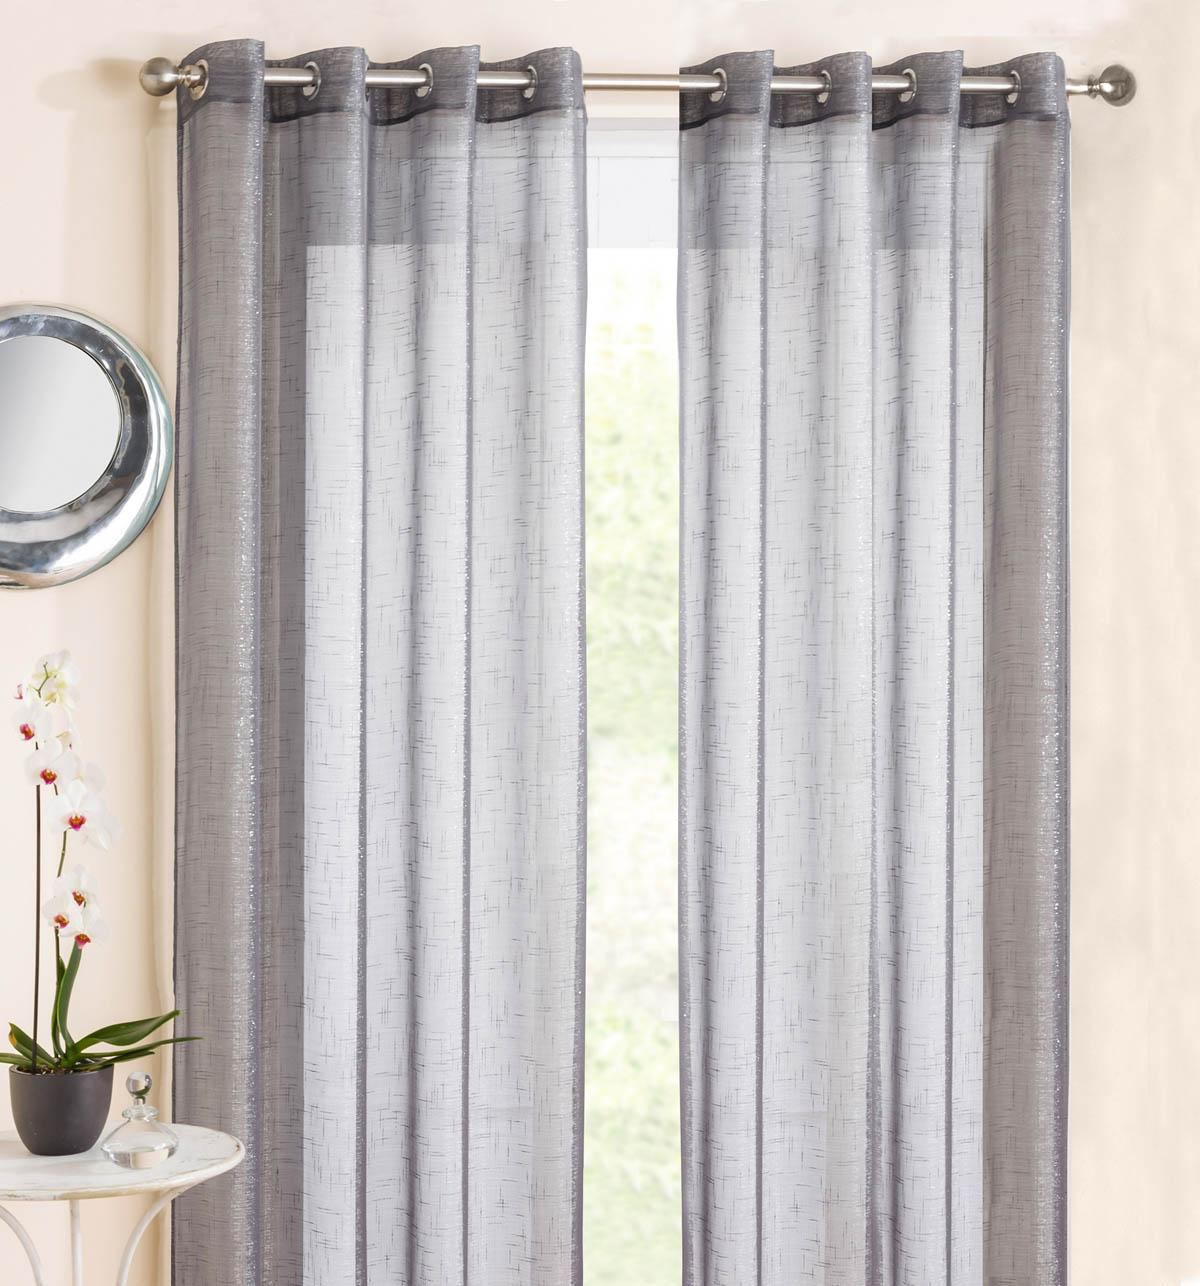 grey bedroom curtains. marrakesh eyelet voile panel grey bedroom curtains w